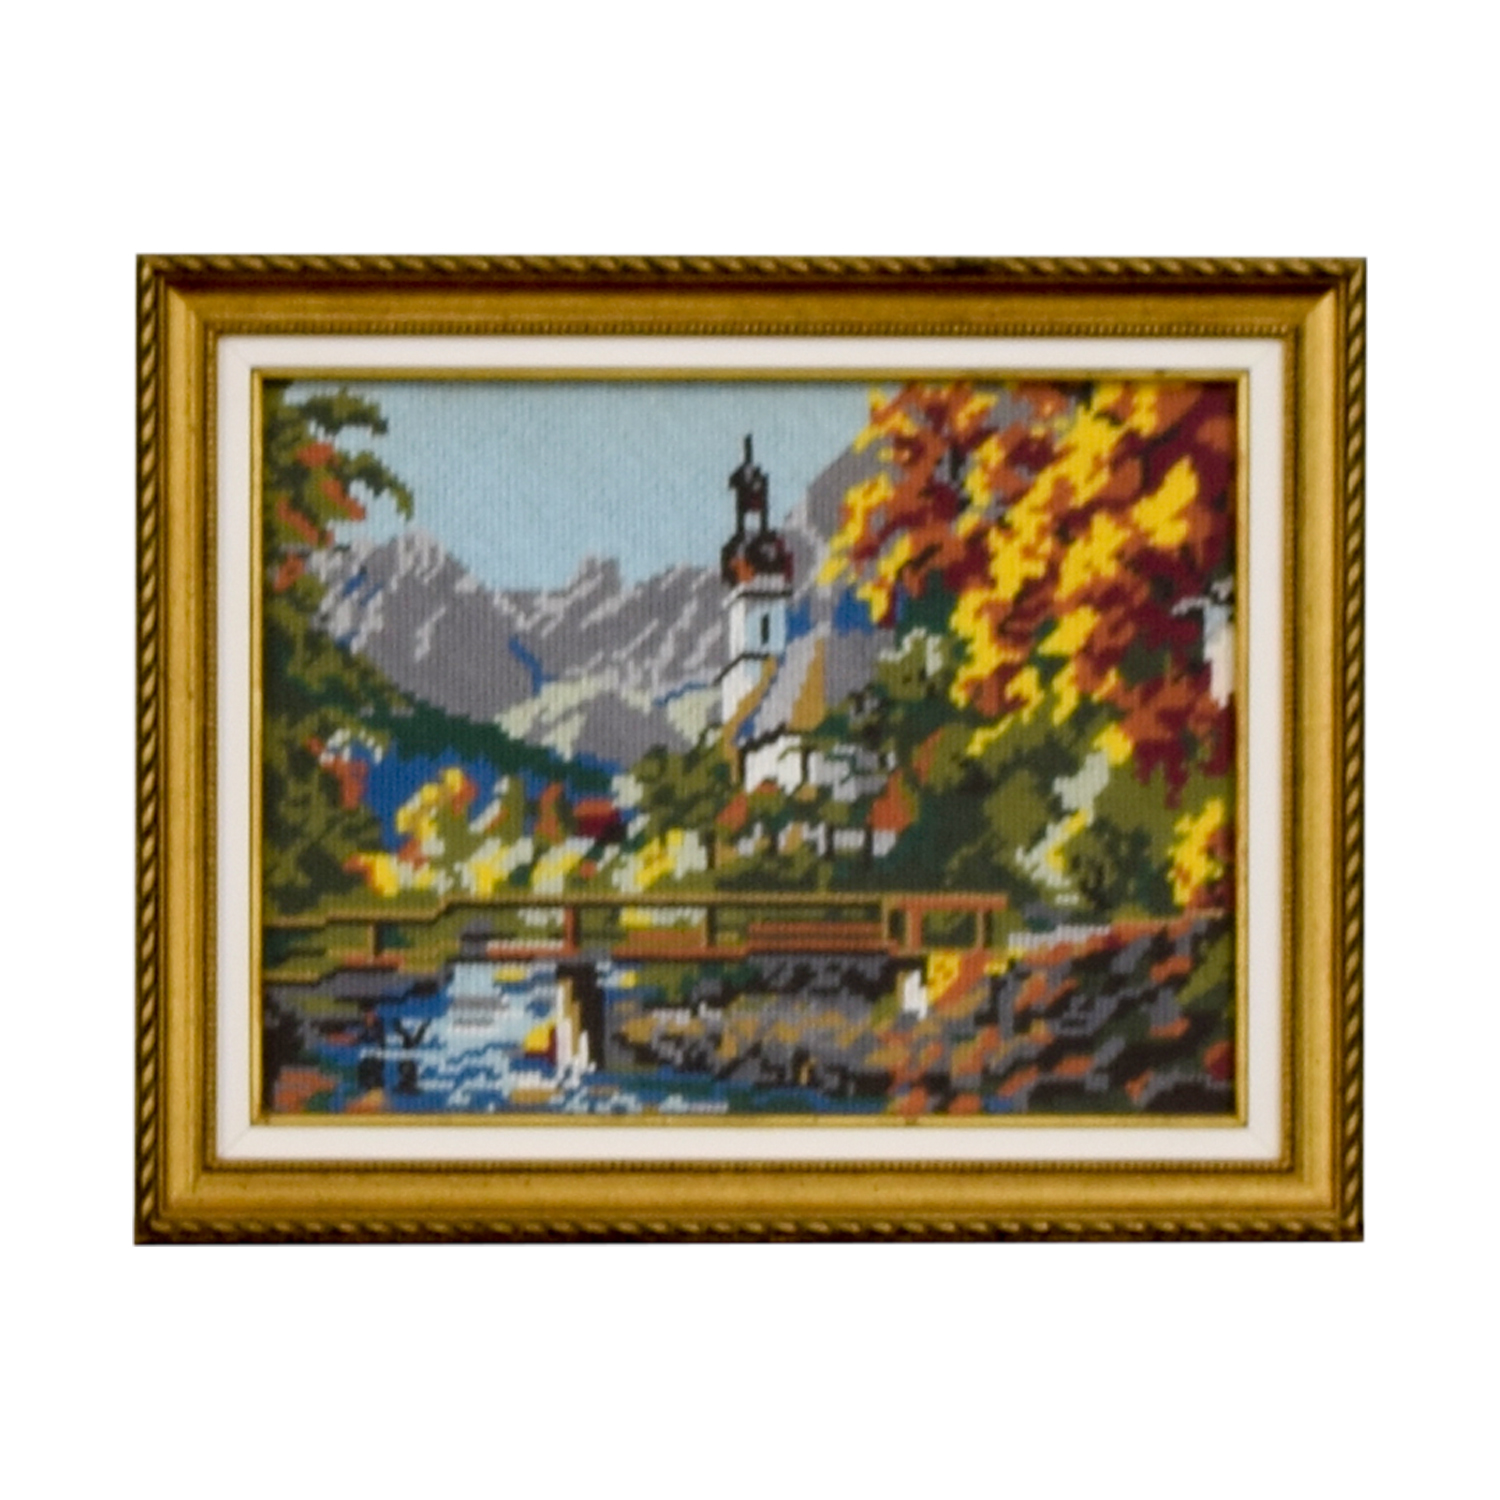 Framed Switzerland Church Bridge Needlepoint nyc